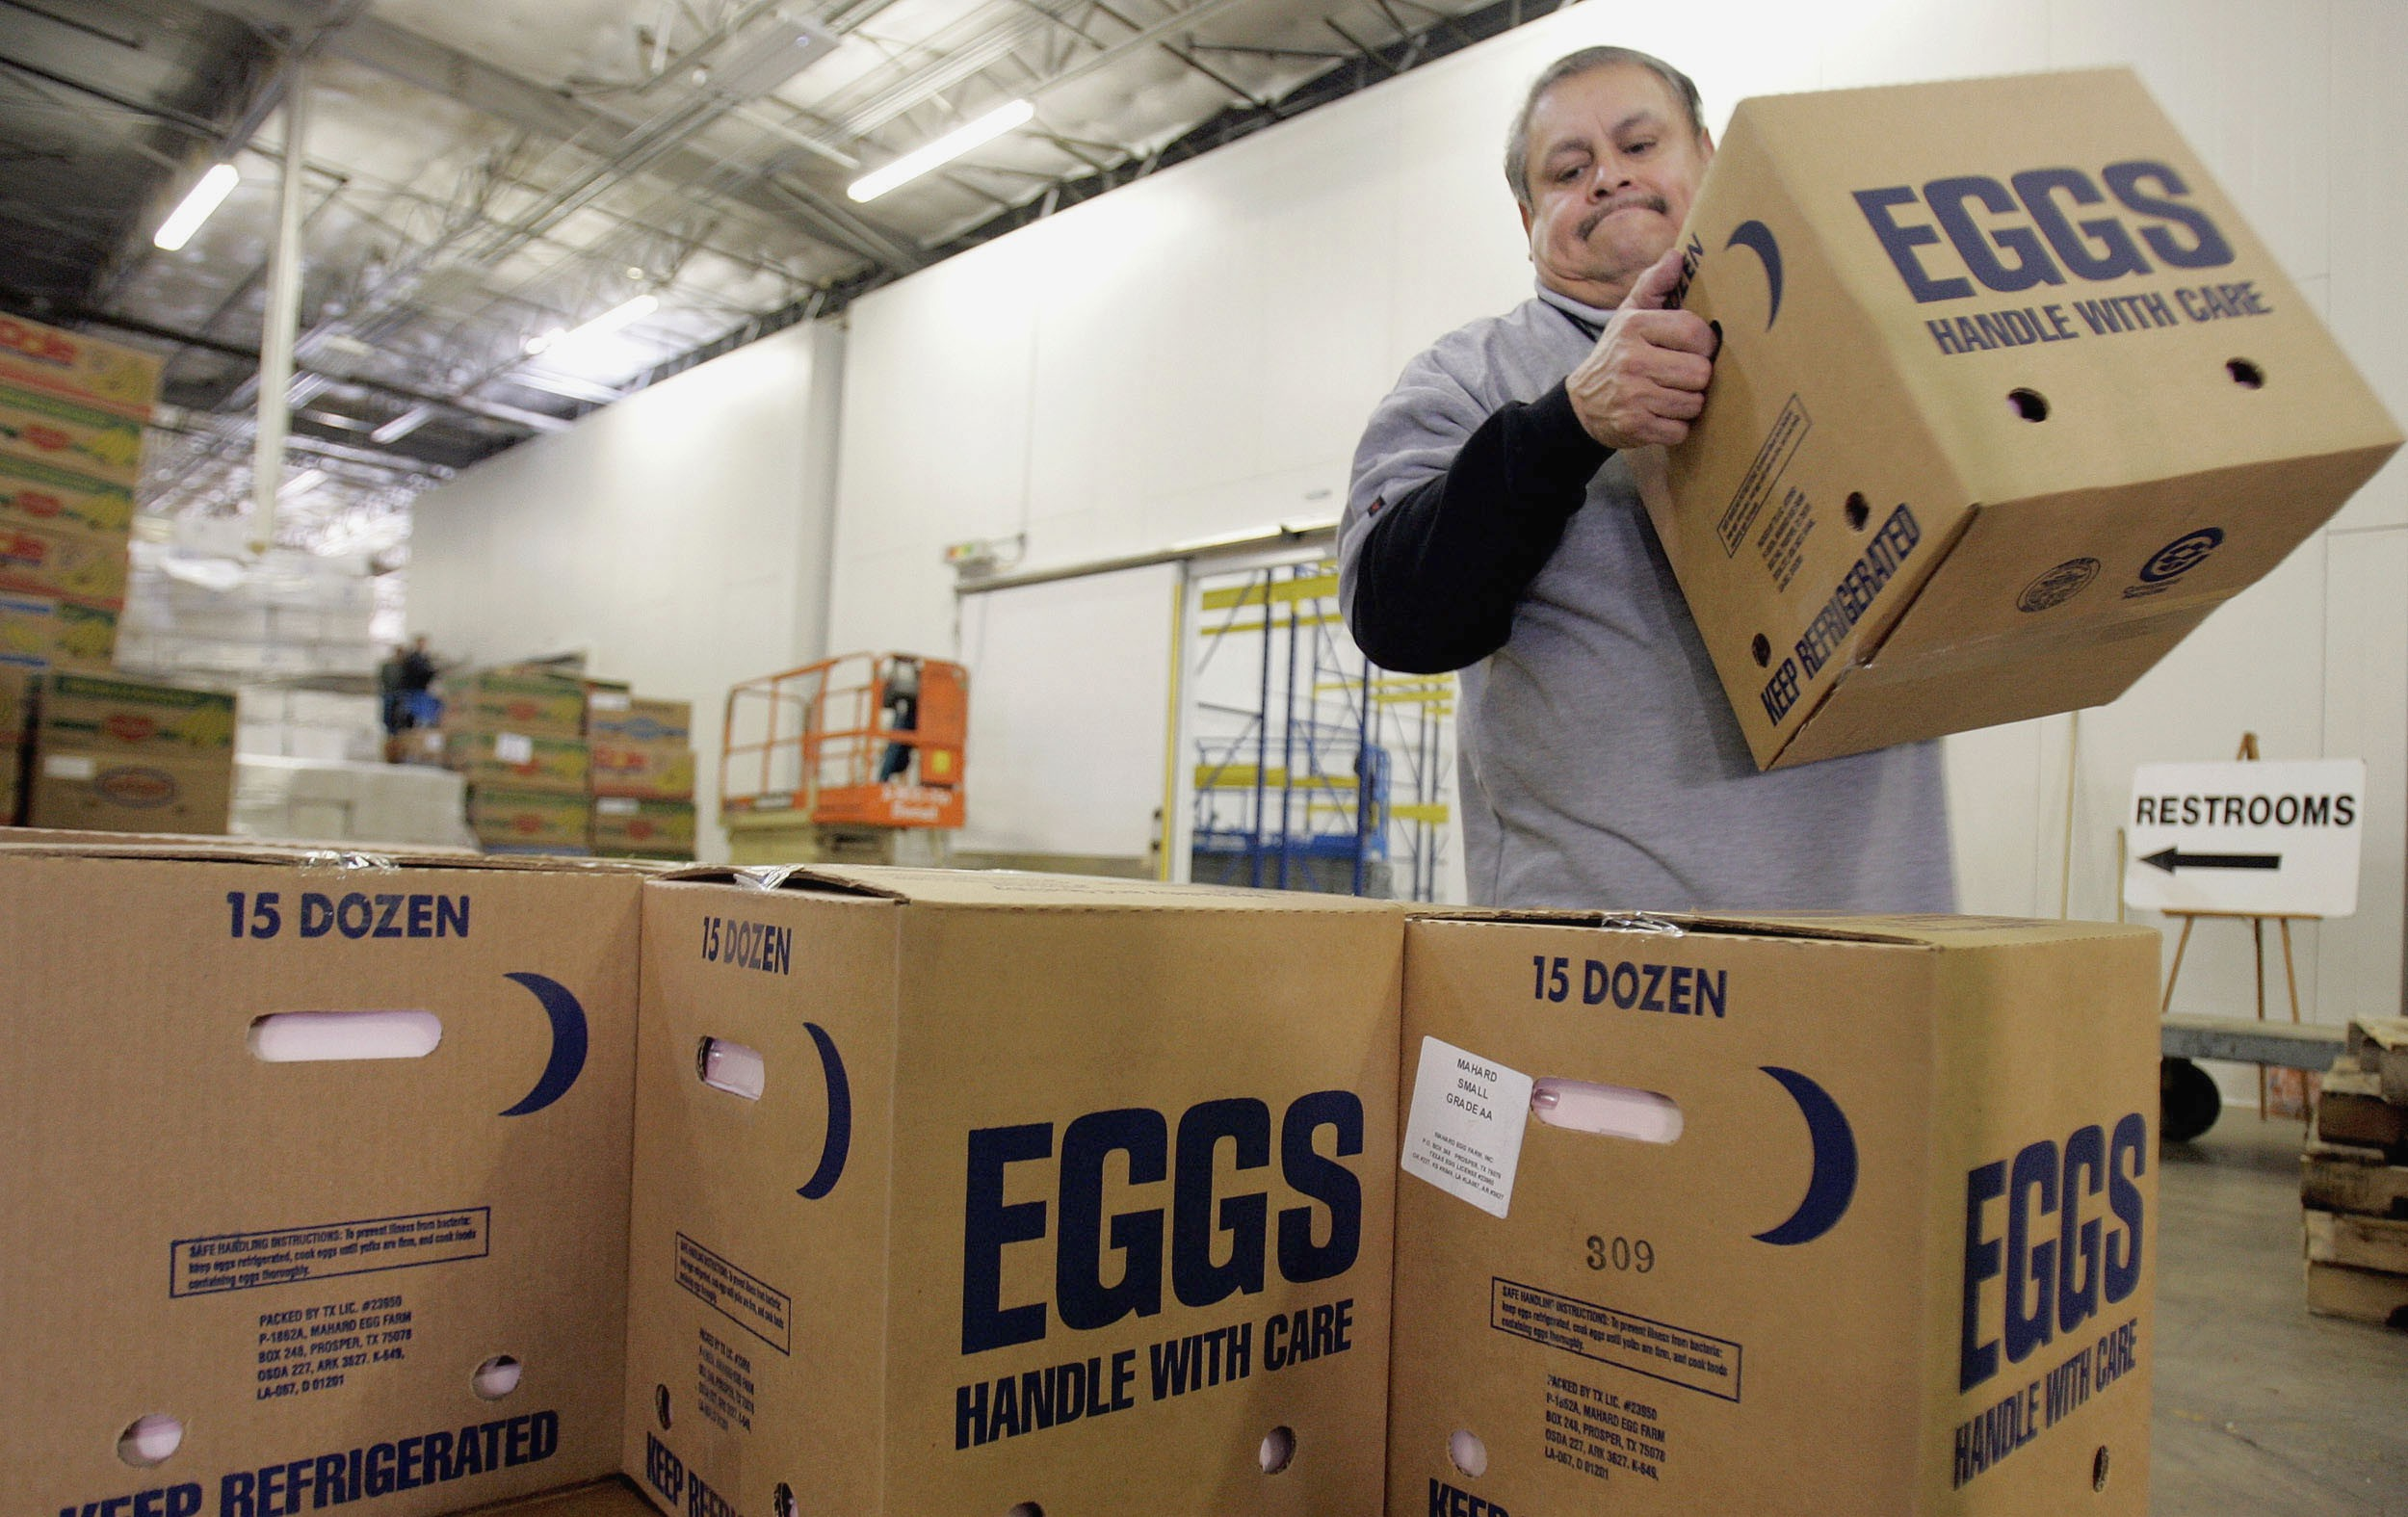 A worker at the North Texas Foodbank stacks boxes of eggs to be loaded into trucks and delivered to various soup kitchens and food distribution centers in Dallas, Texas November 20, 2006